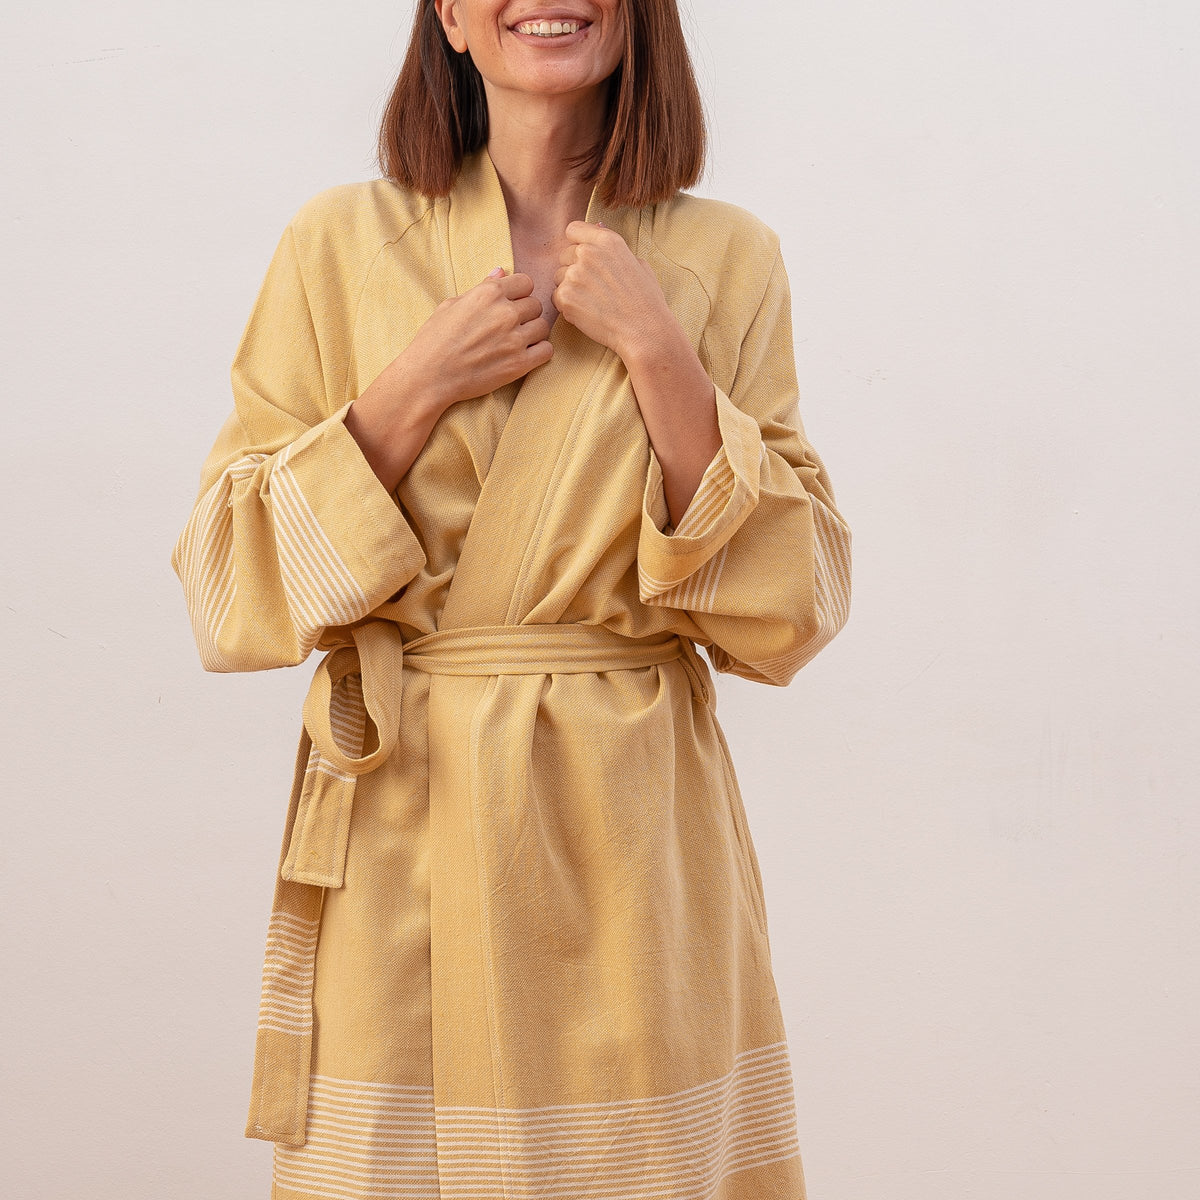 Upma Unisex Cotton Bathrobe